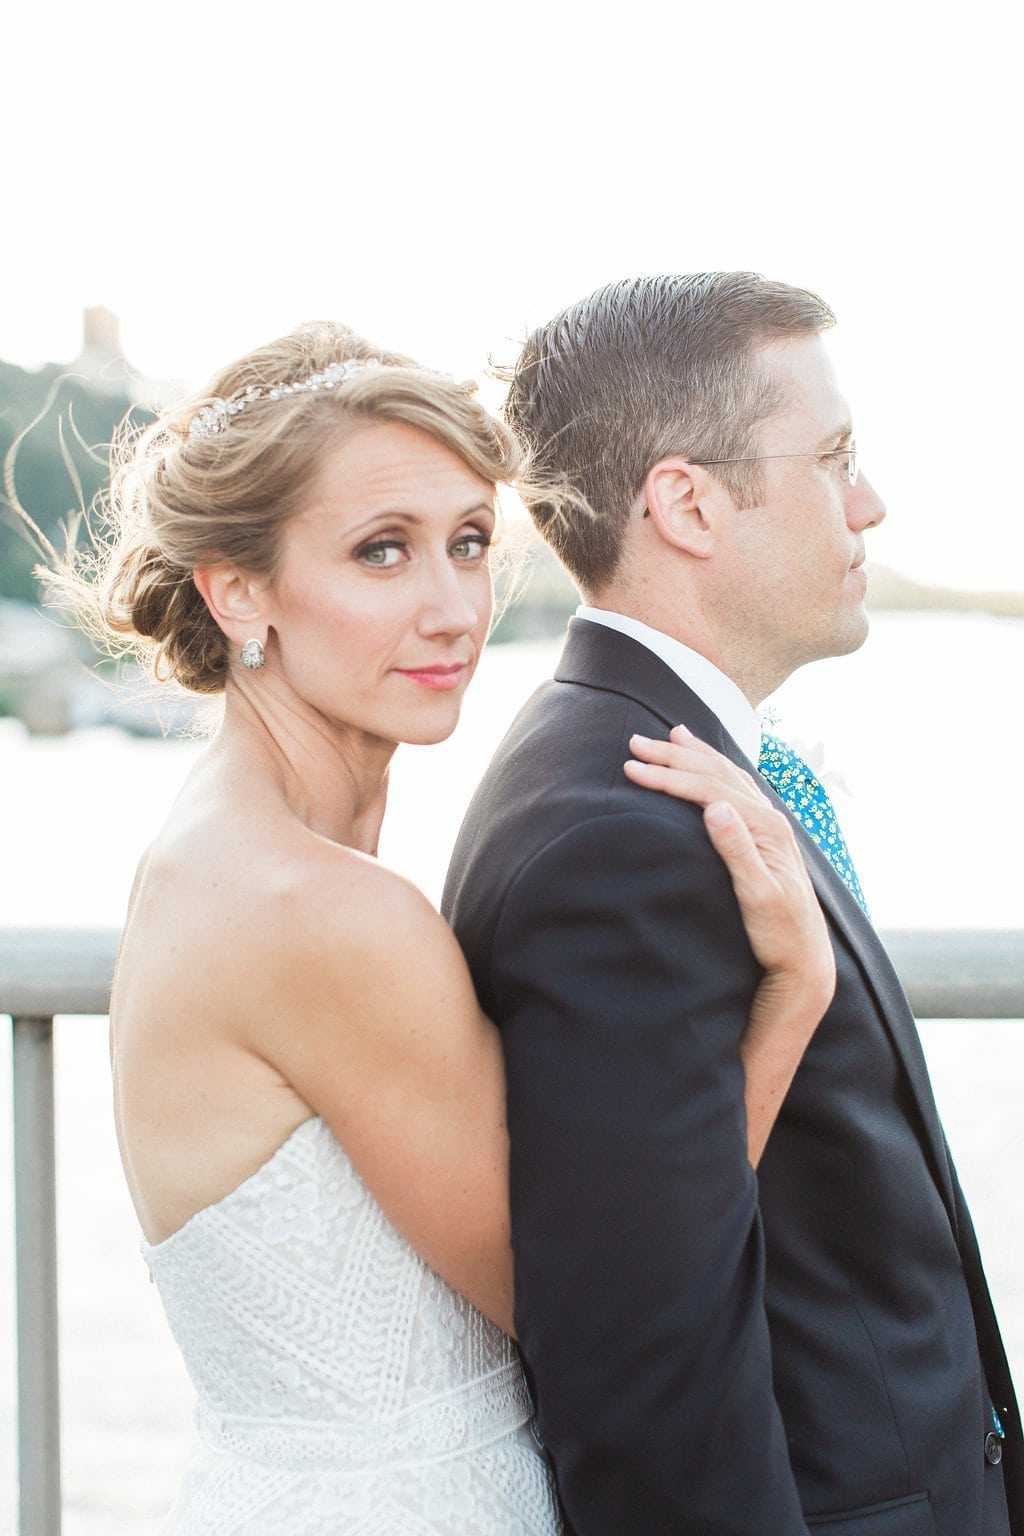 Bridal portraits on Smithfield Street Bridge - 1920's inspired wedding Grand Concourse